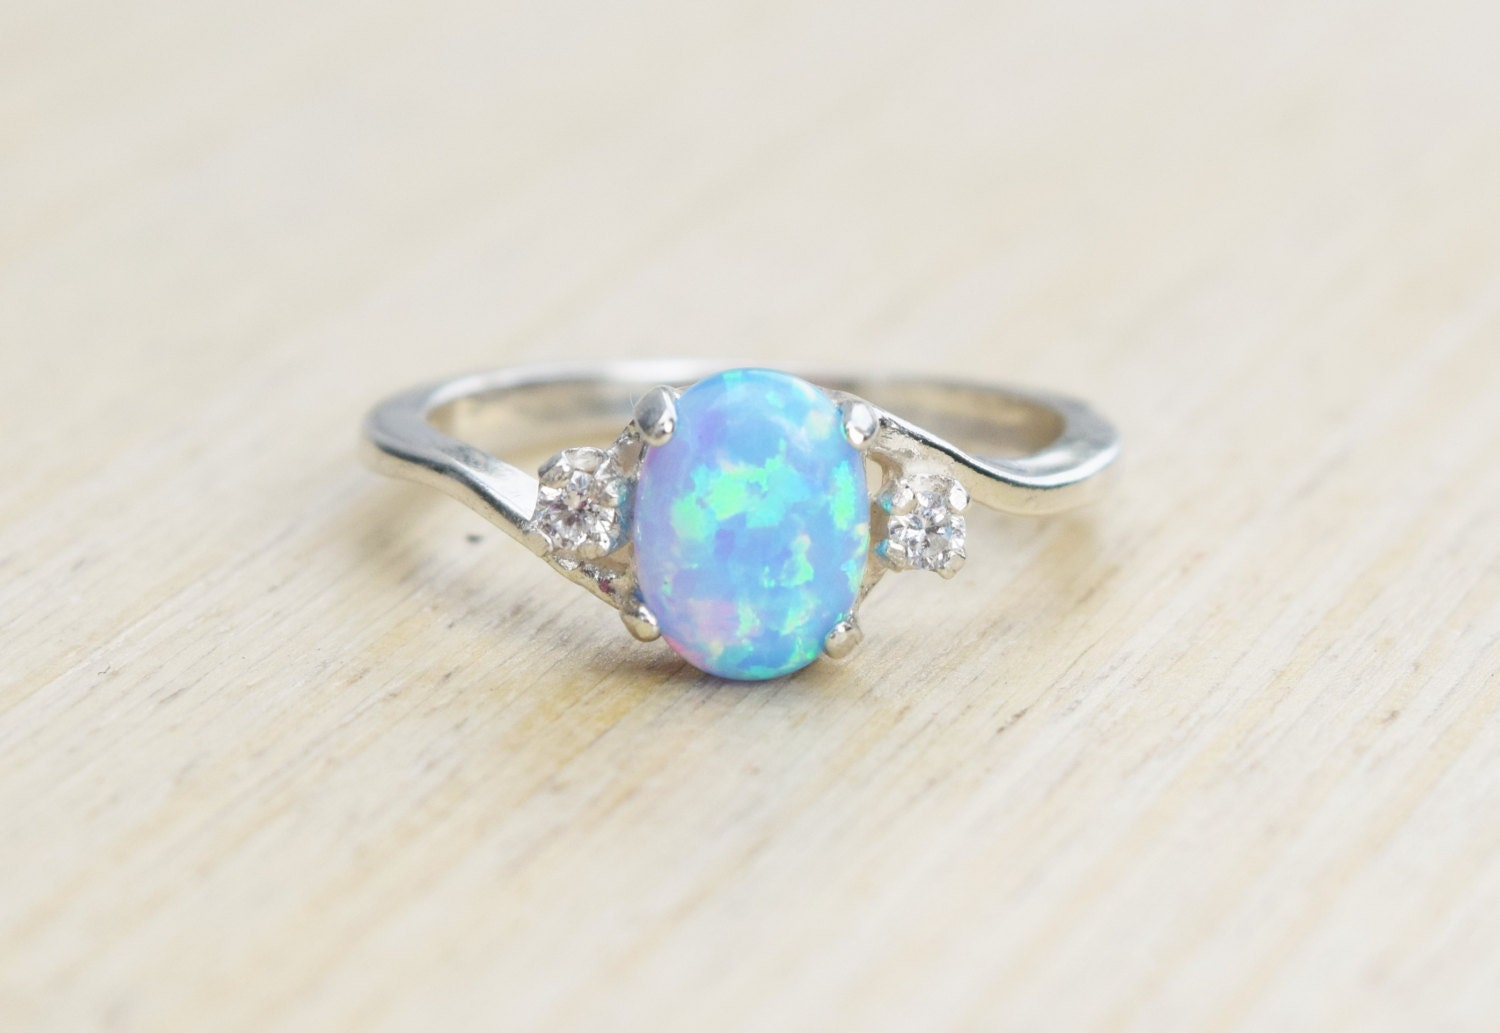 Silver Lab Opal Ring Blue Opal Ring Light Blue Opal Ring